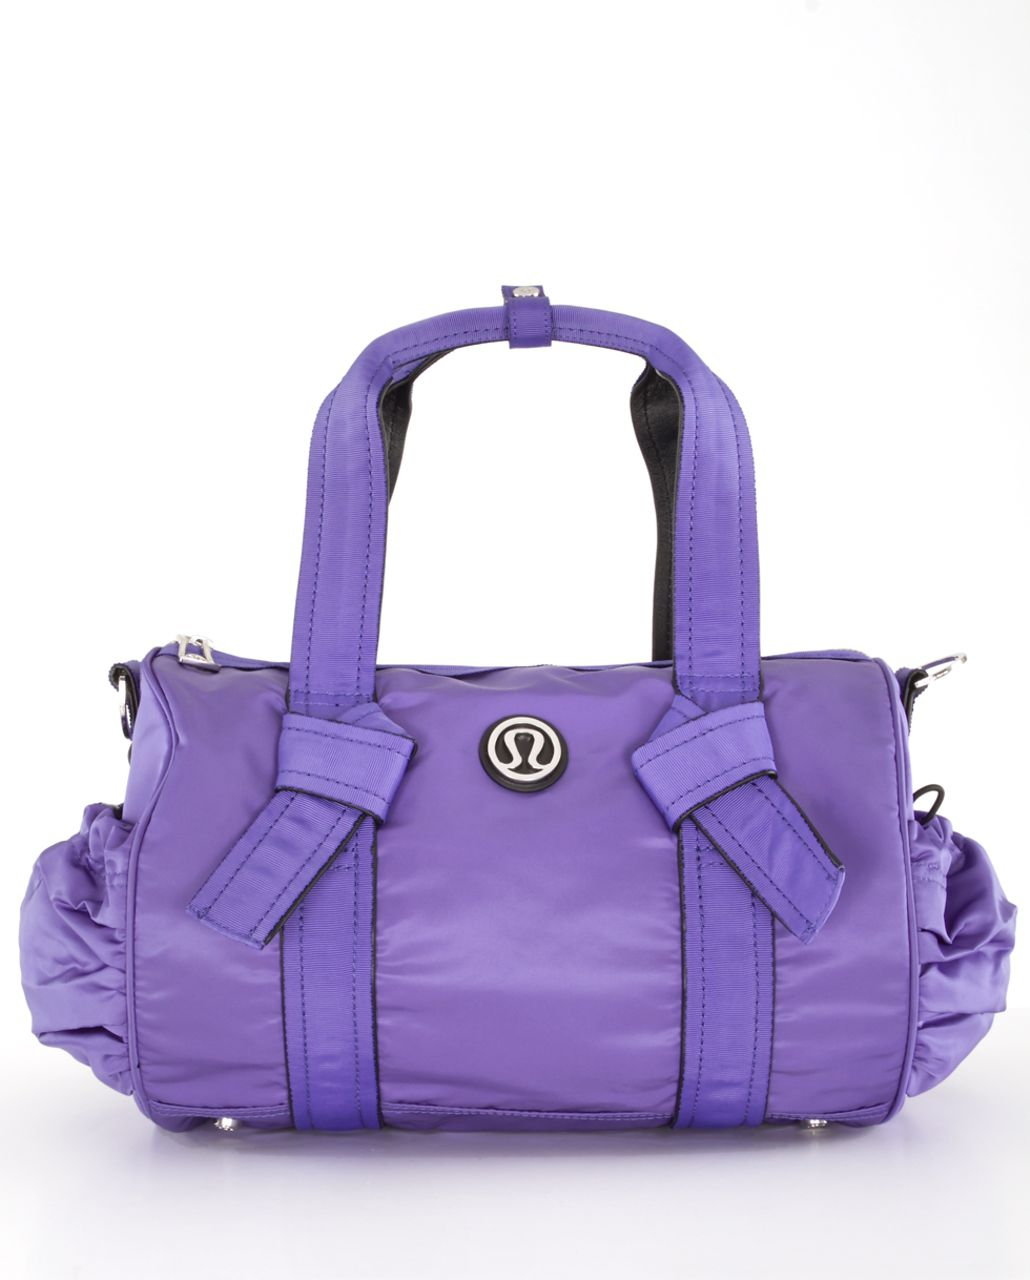 Lululemon DTB Duffel - Persian Purple